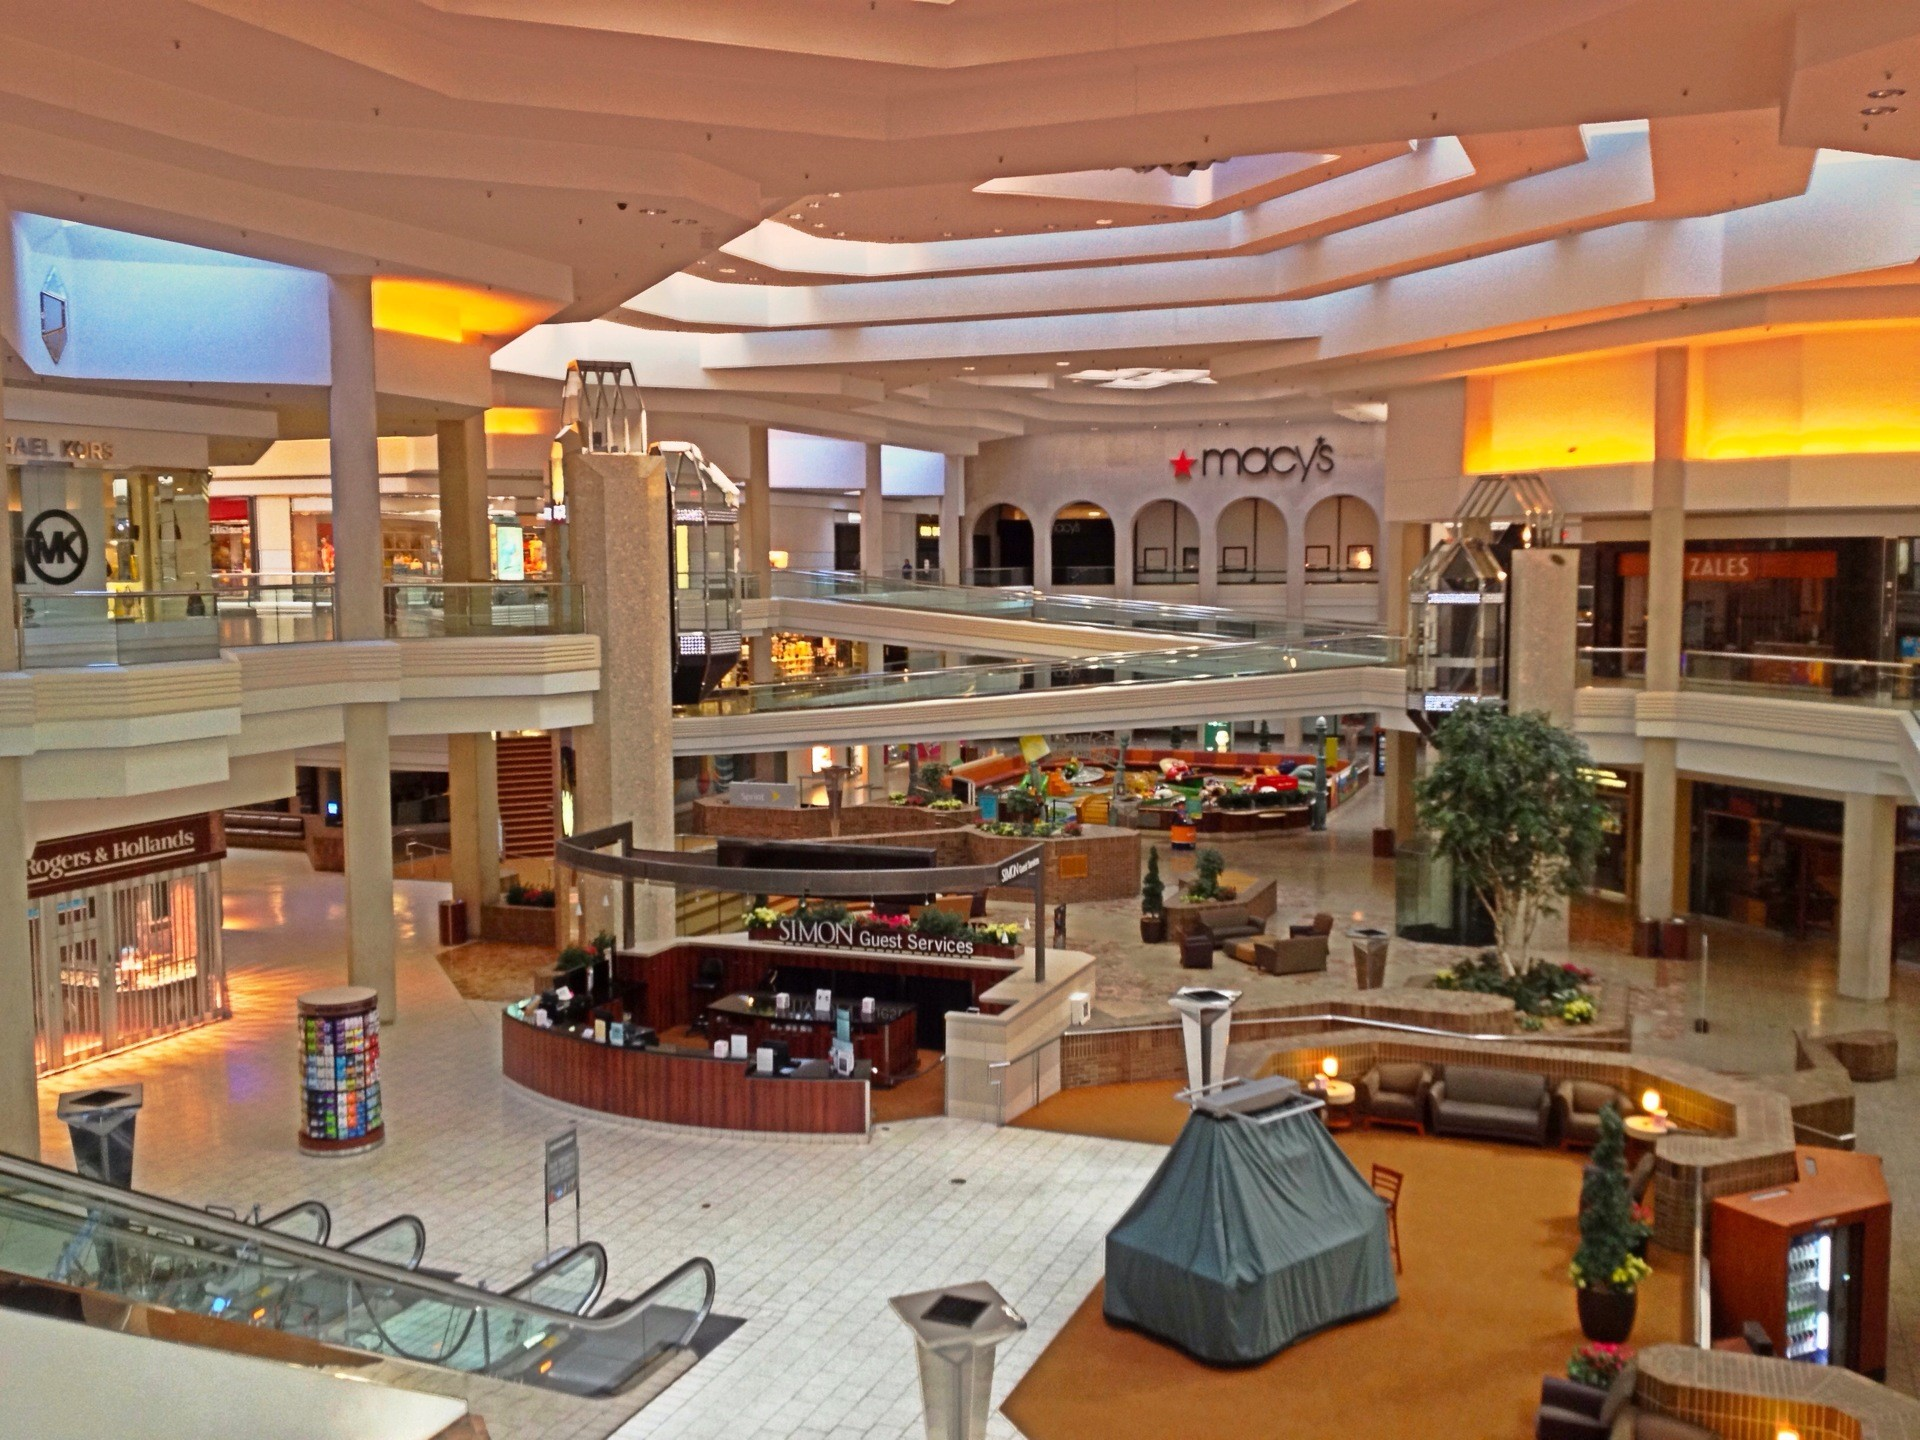 Woodfield Mall is a shopping mall located in the northwest Chicago suburb of Schaumburg, Illinois, United States, at the intersection of Golf Road and Inters.